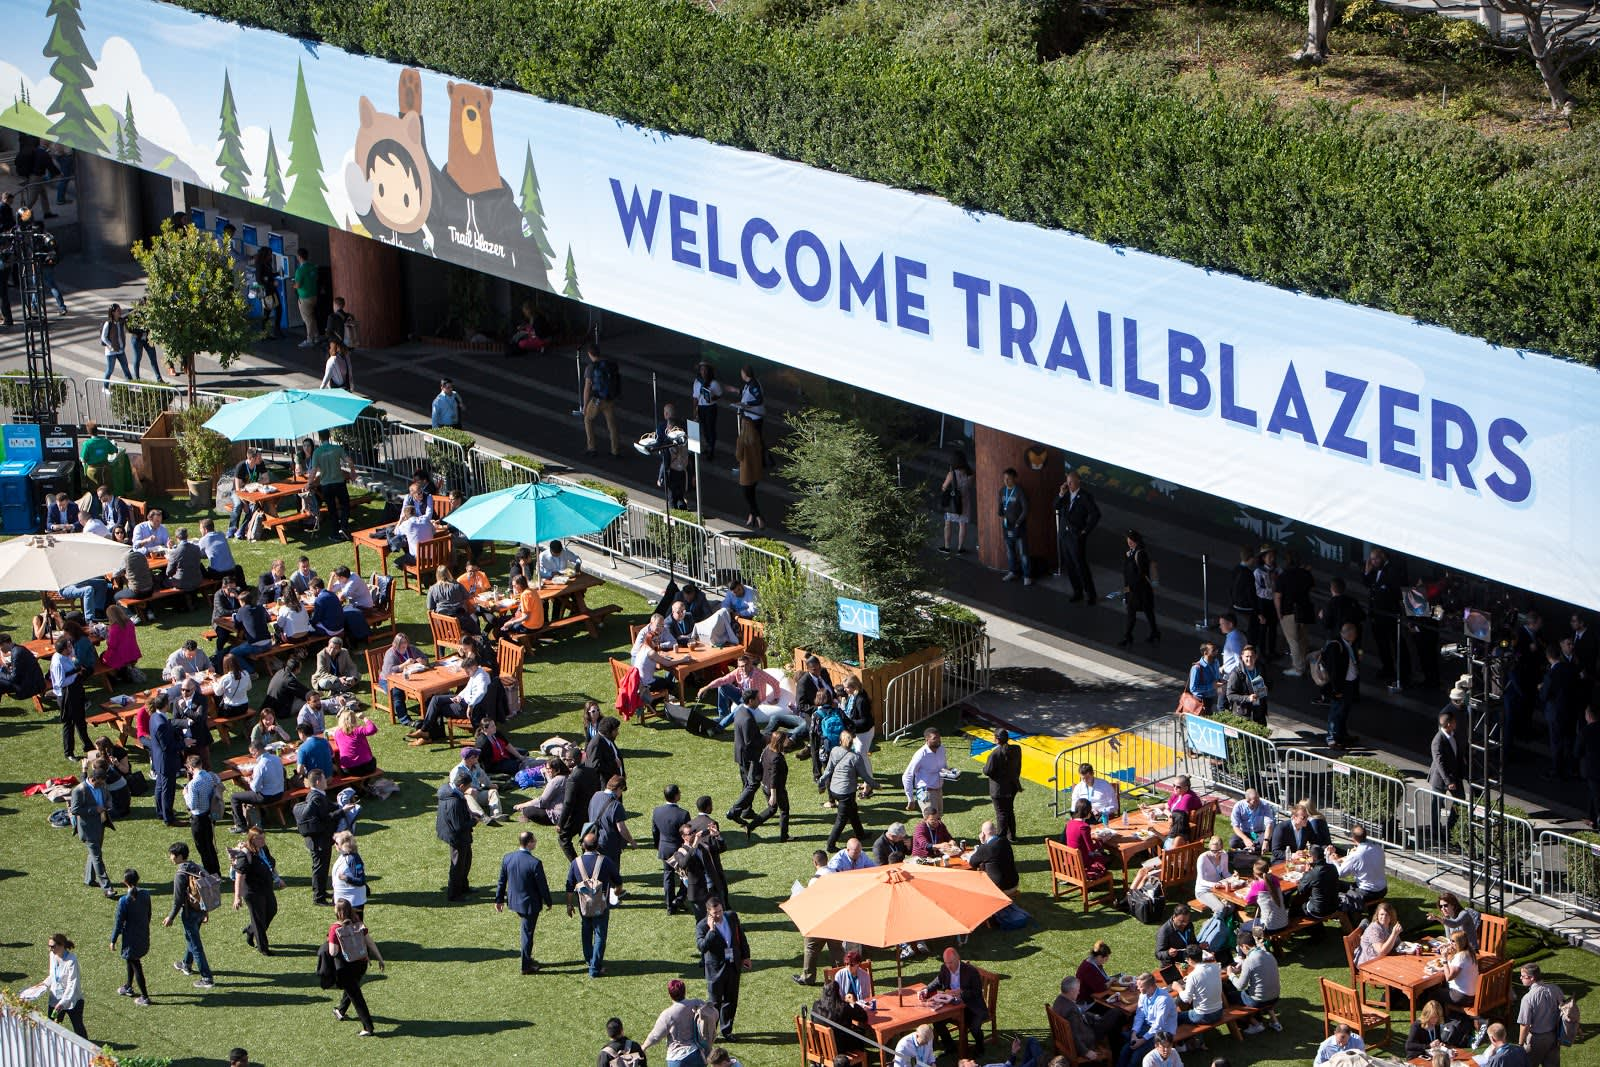 Take some time in the sunshine to network with your fellow Trailblazers.